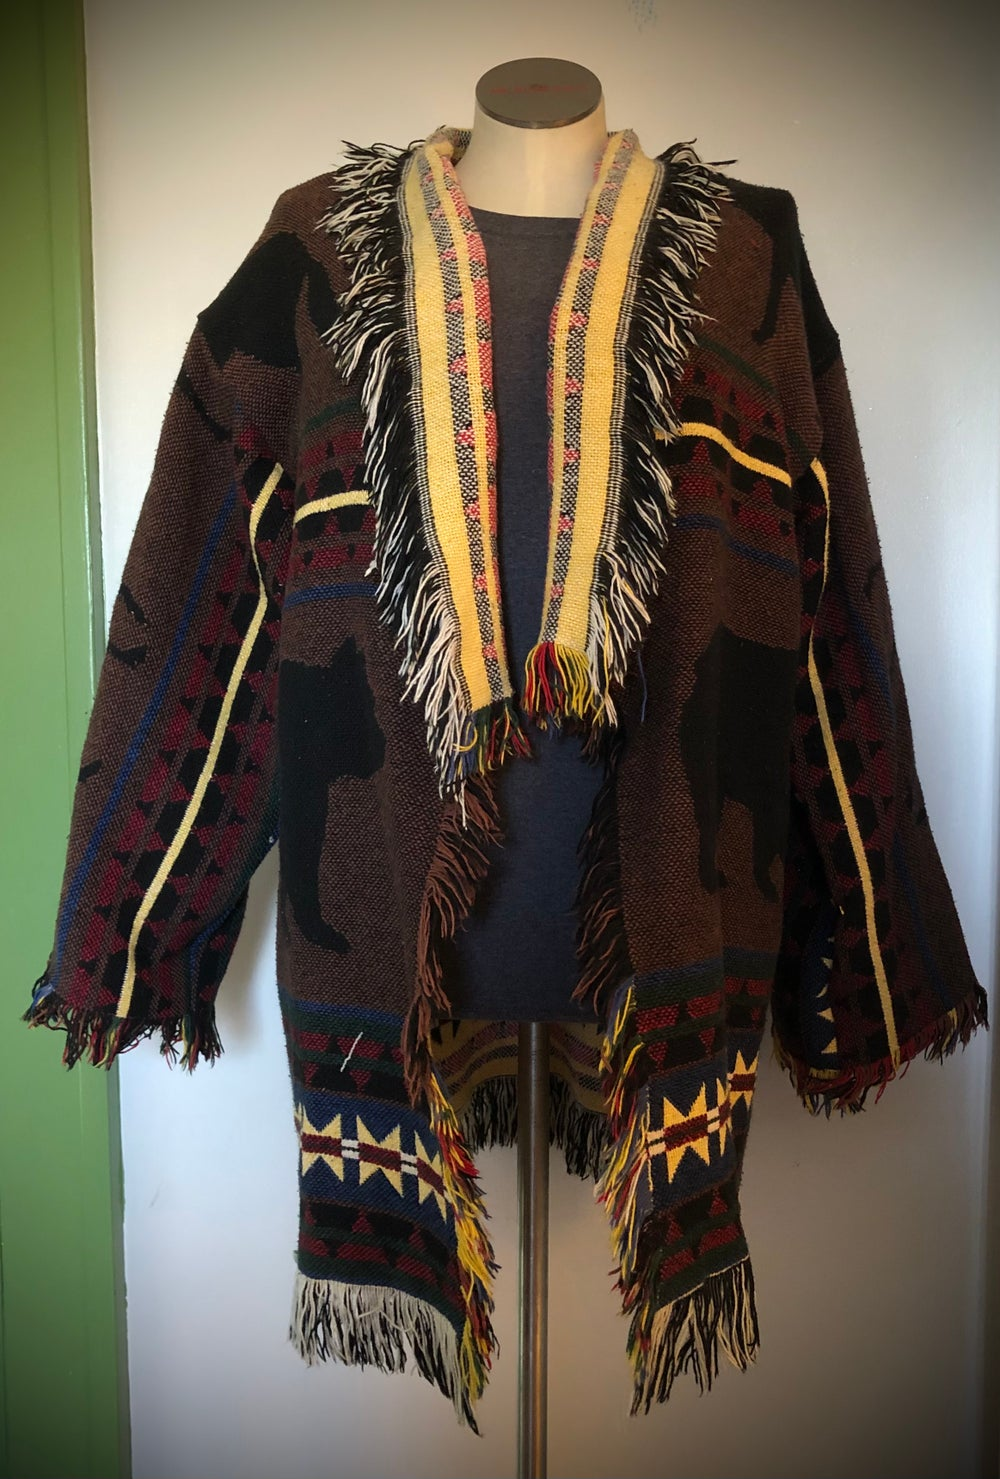 The Great Northern custom tapestry jacket